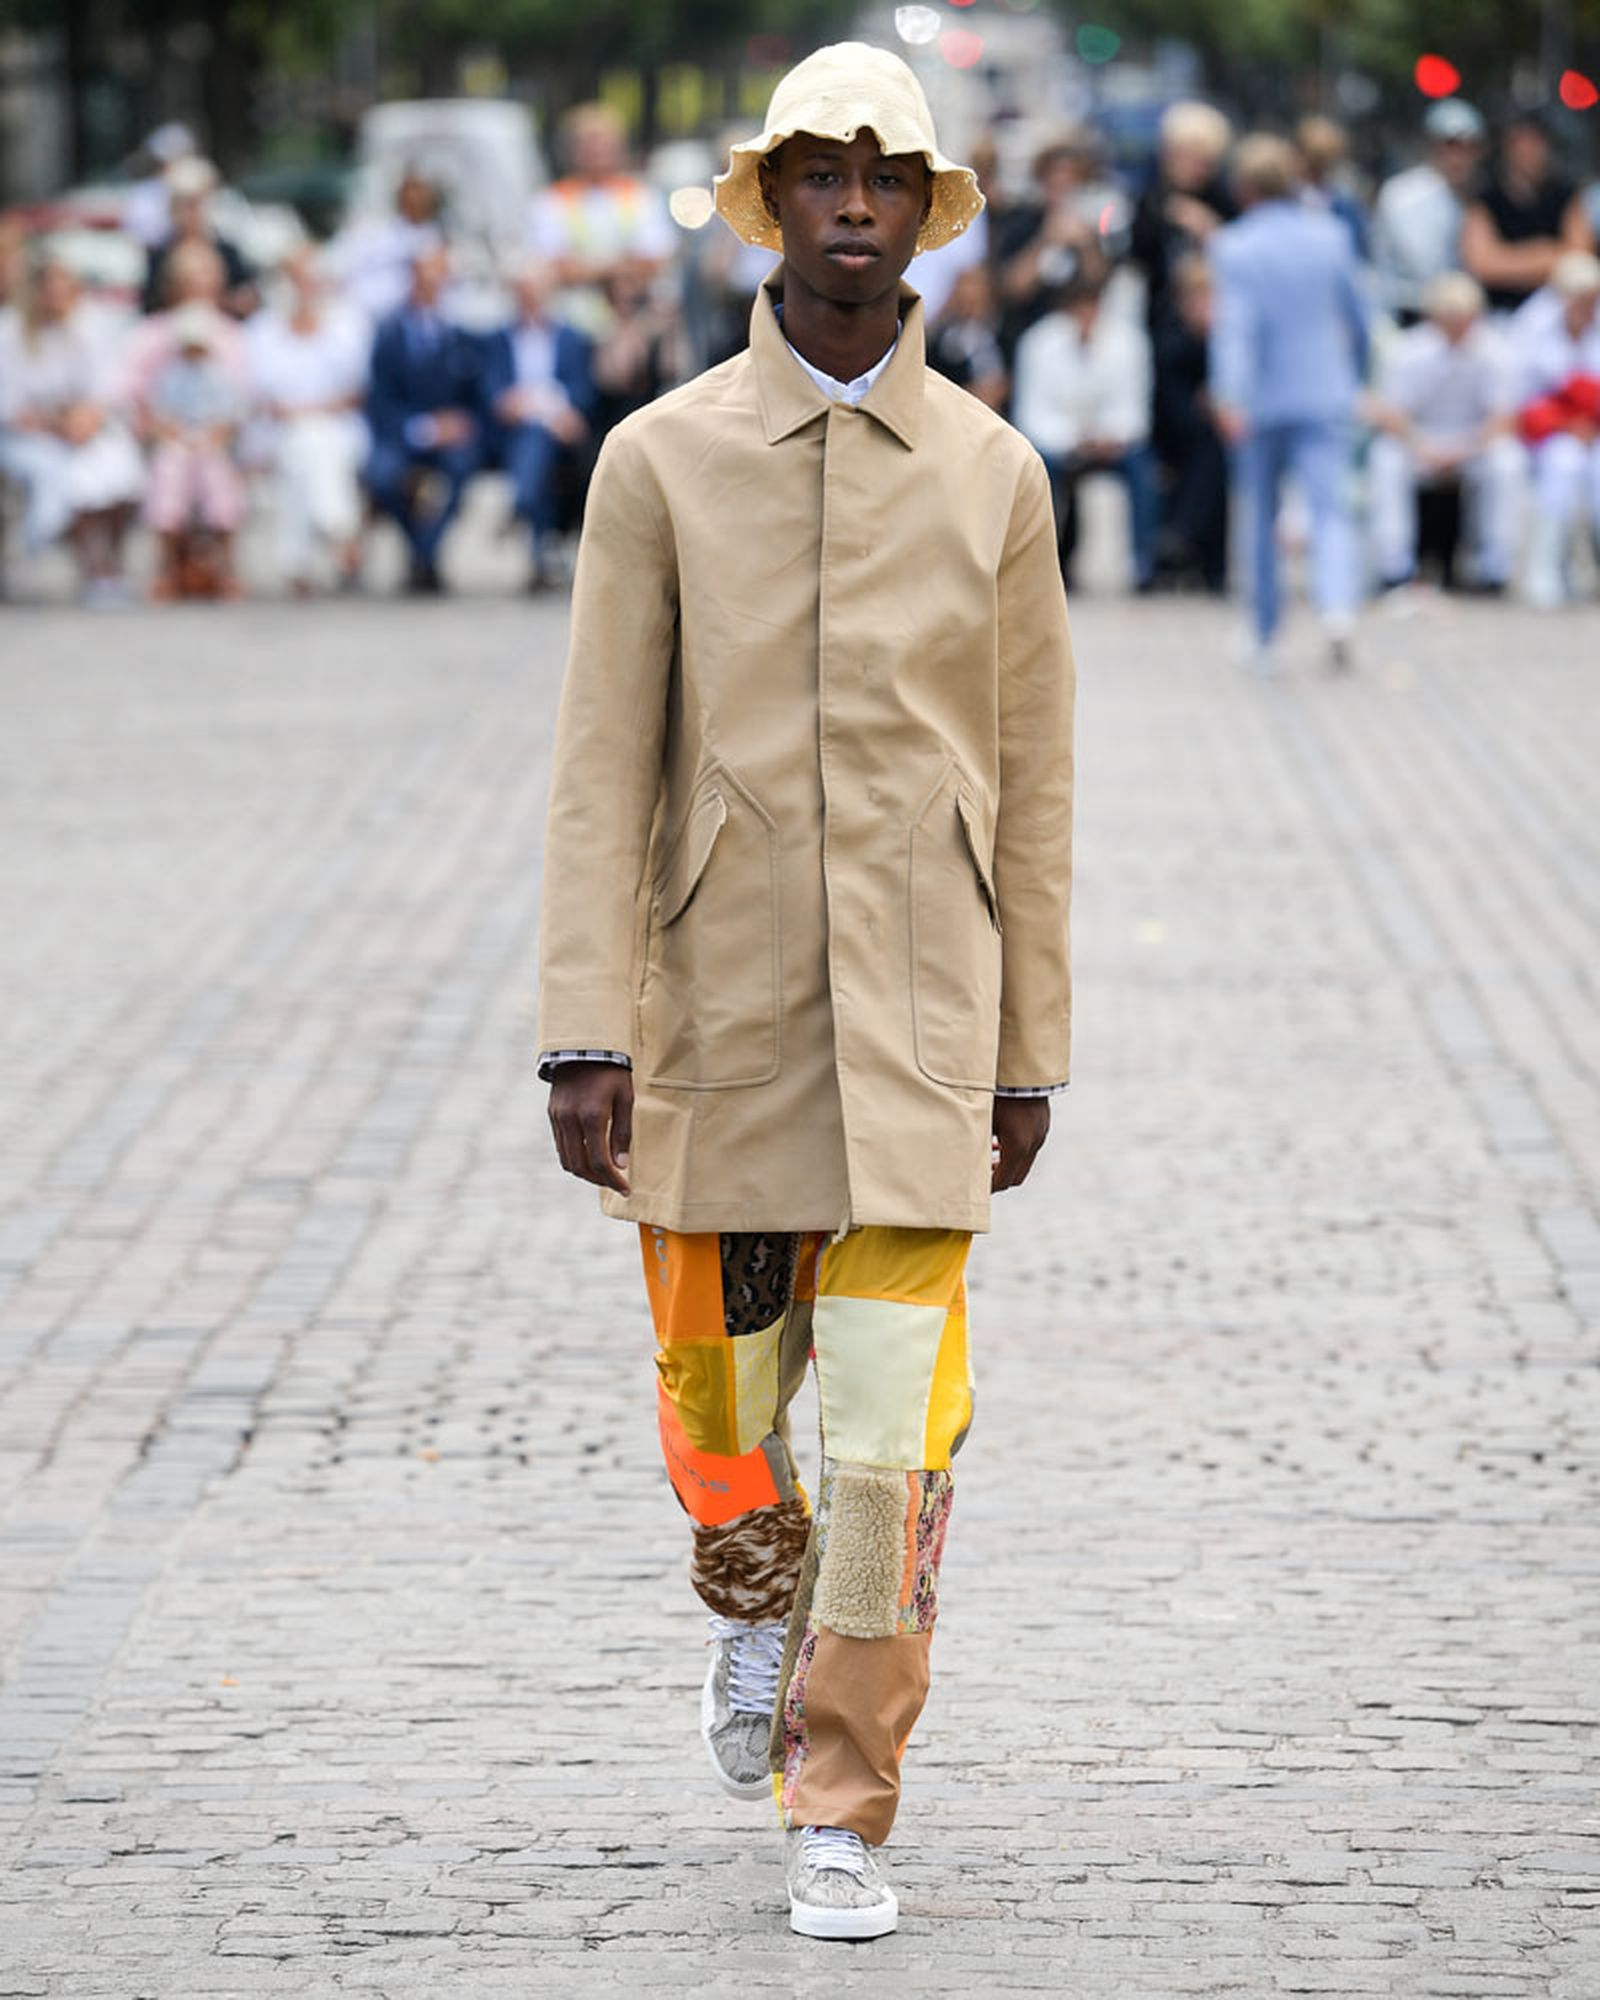 copenhagen fashion week 2019 recap soulland 7days Sunflower holzweiler